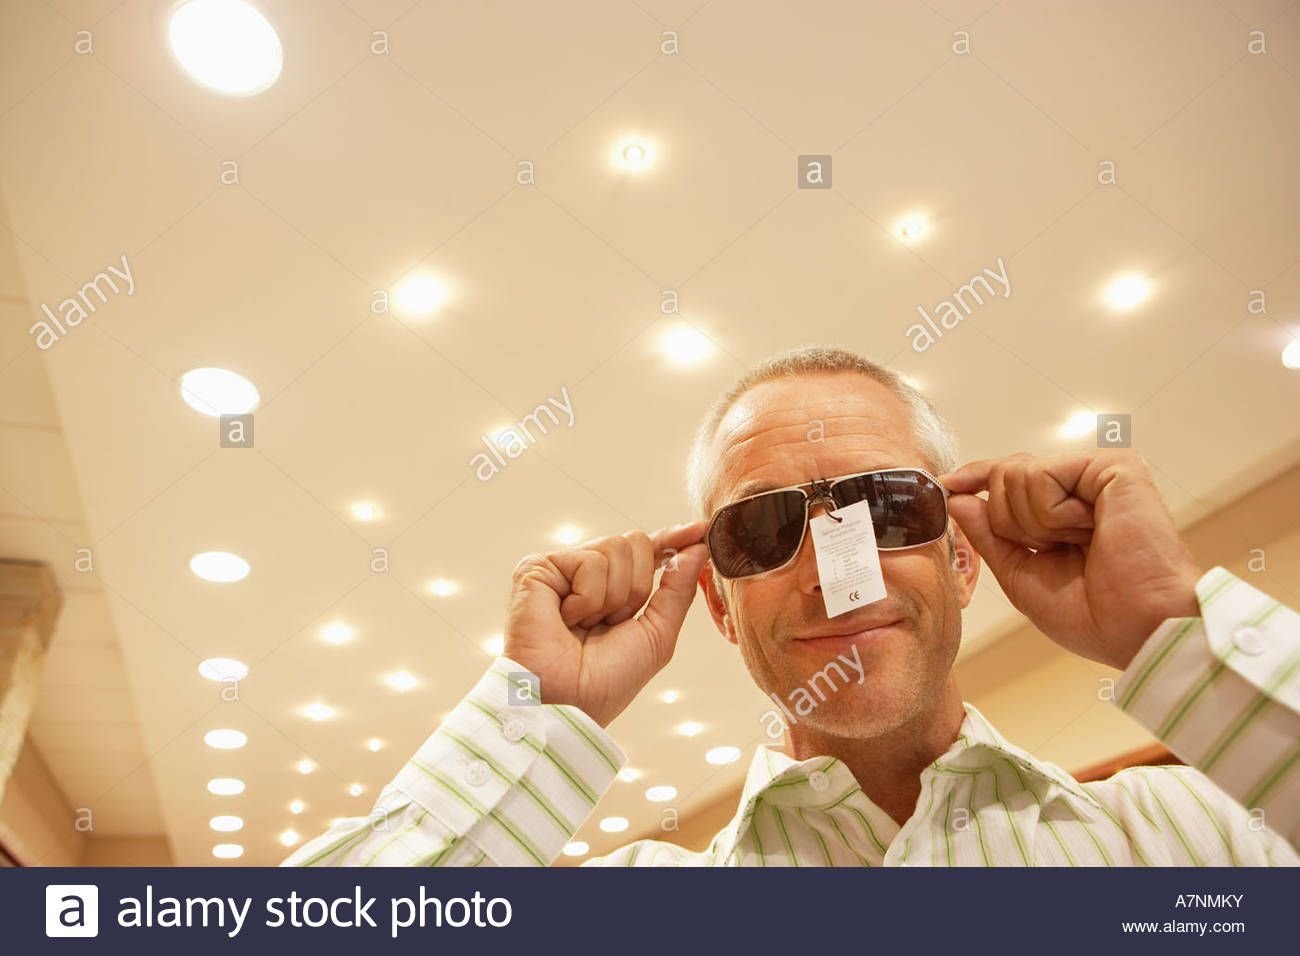 Mature man trying on pair of sunglasses in shop price tag attached smiling low angle view - Stock Image